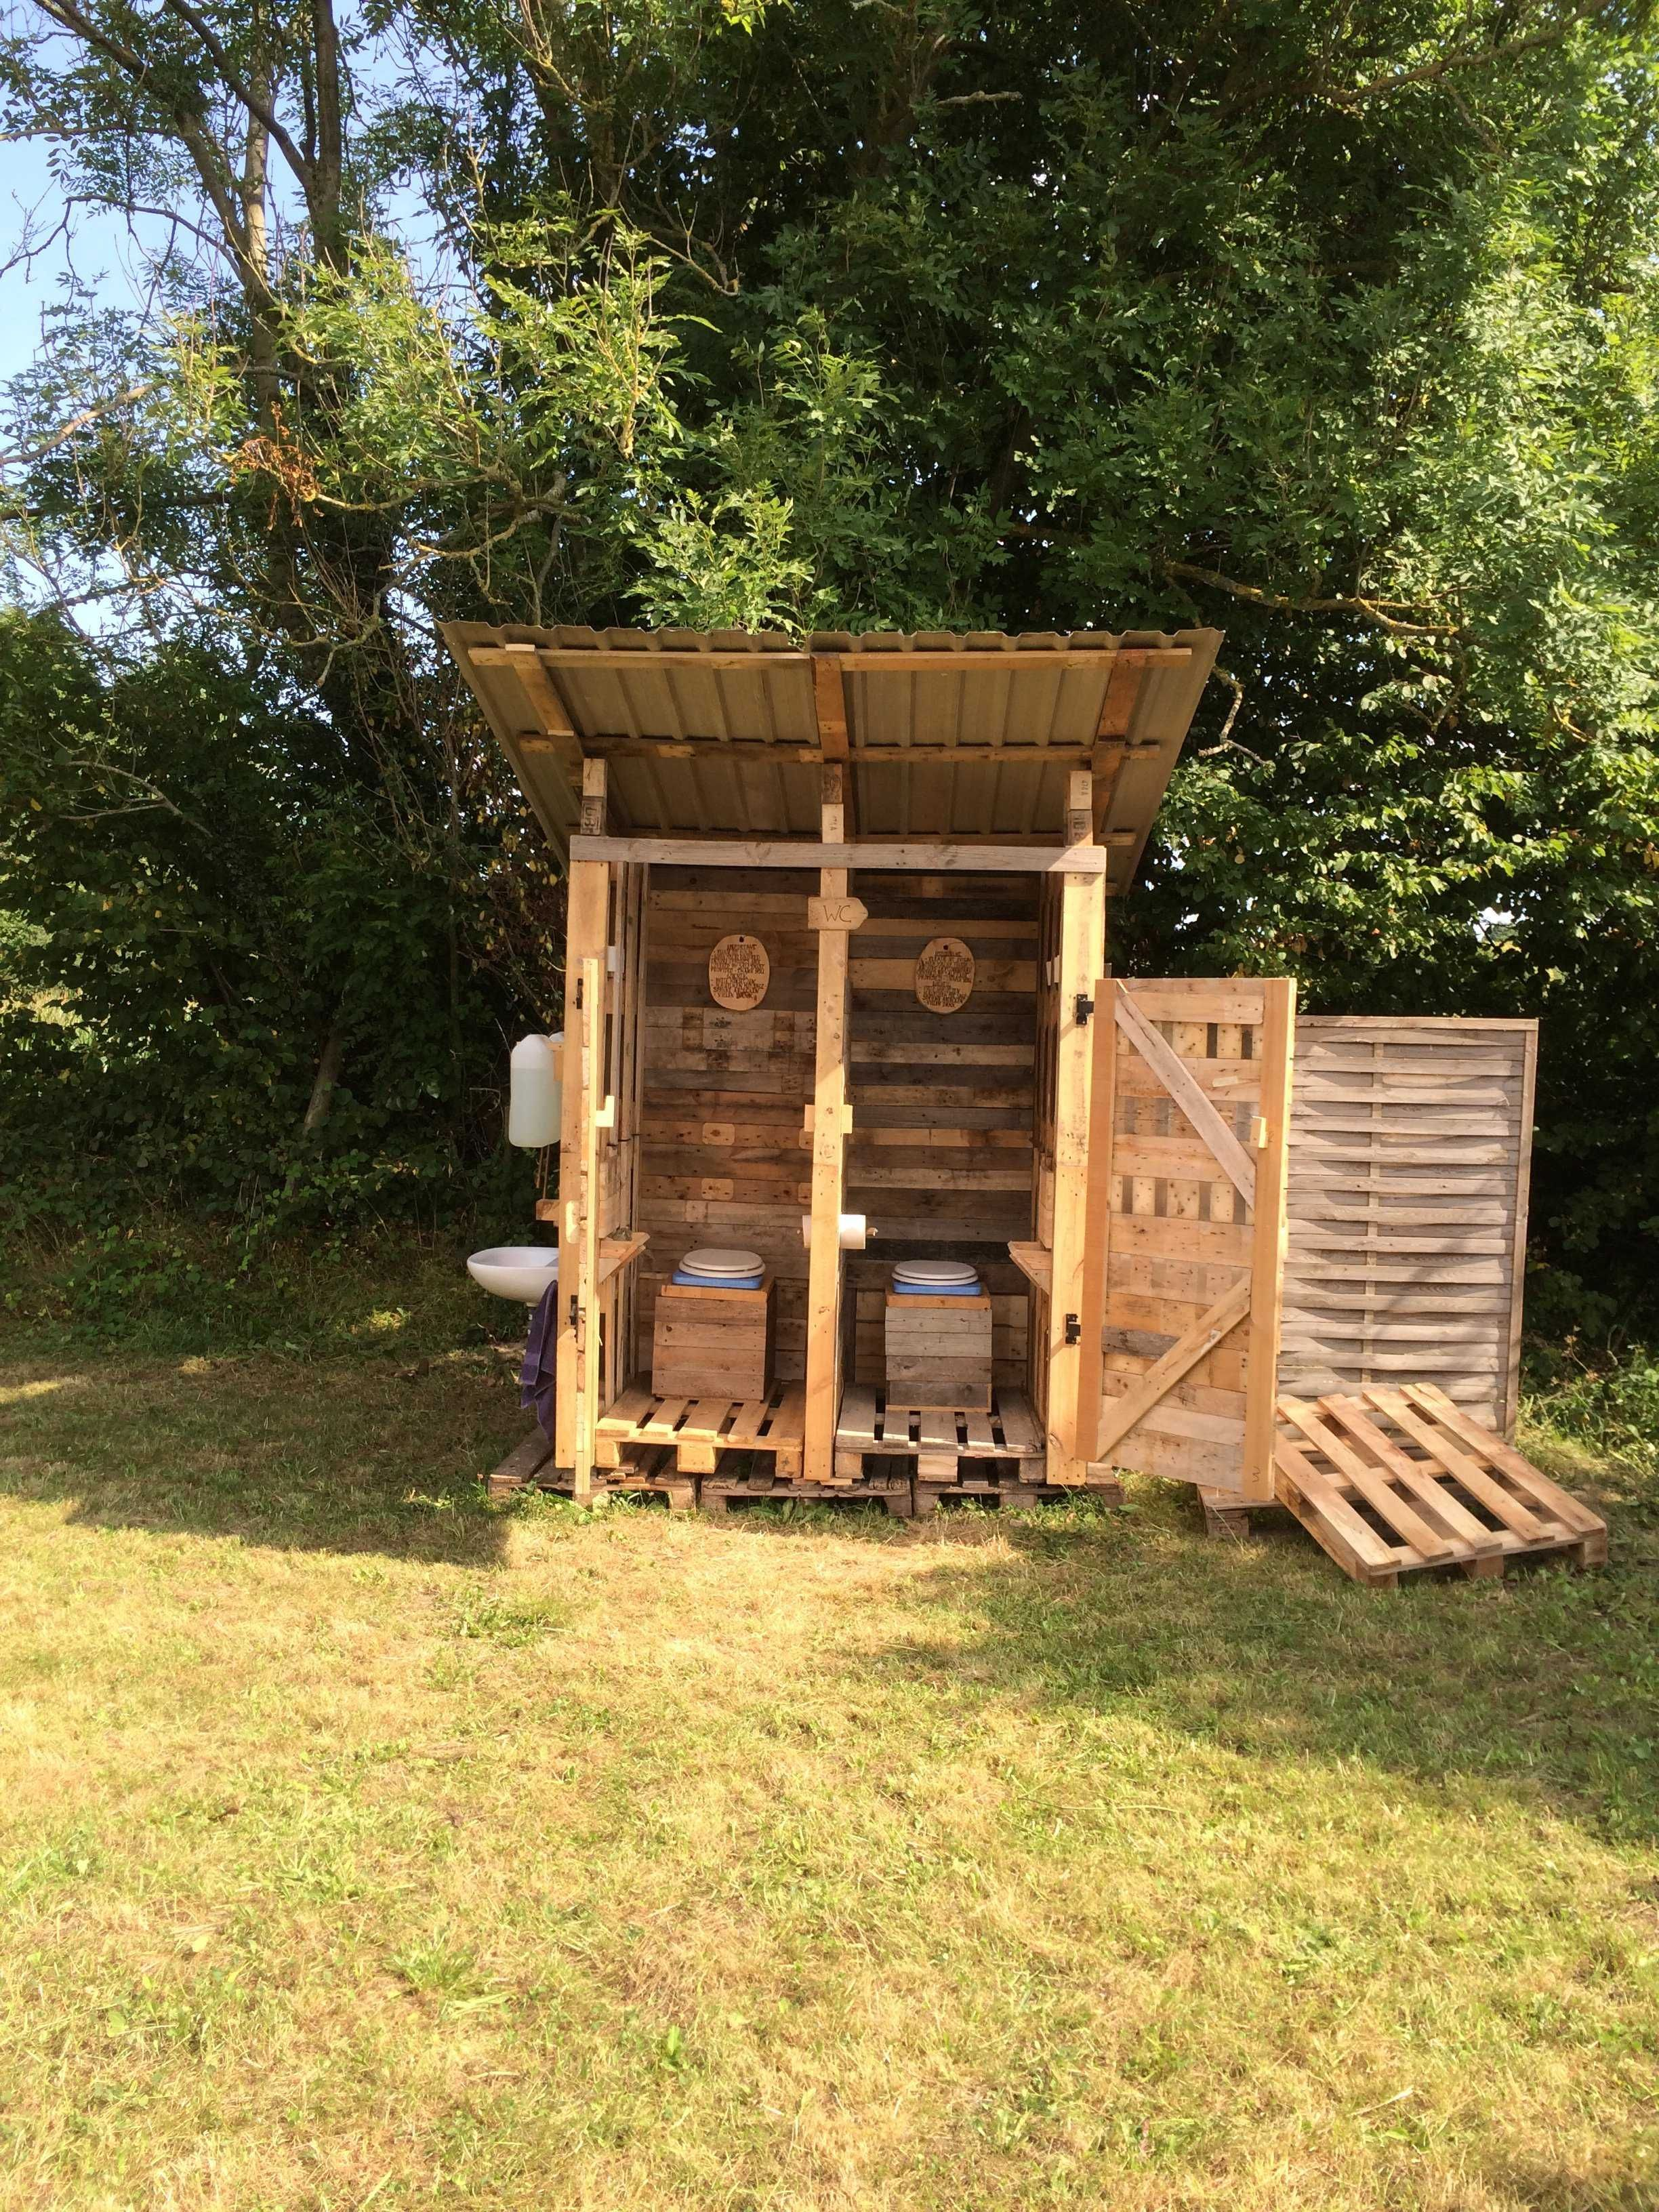 Pallet Compost Demountable Toilet   Composting, Toilet and Pallets